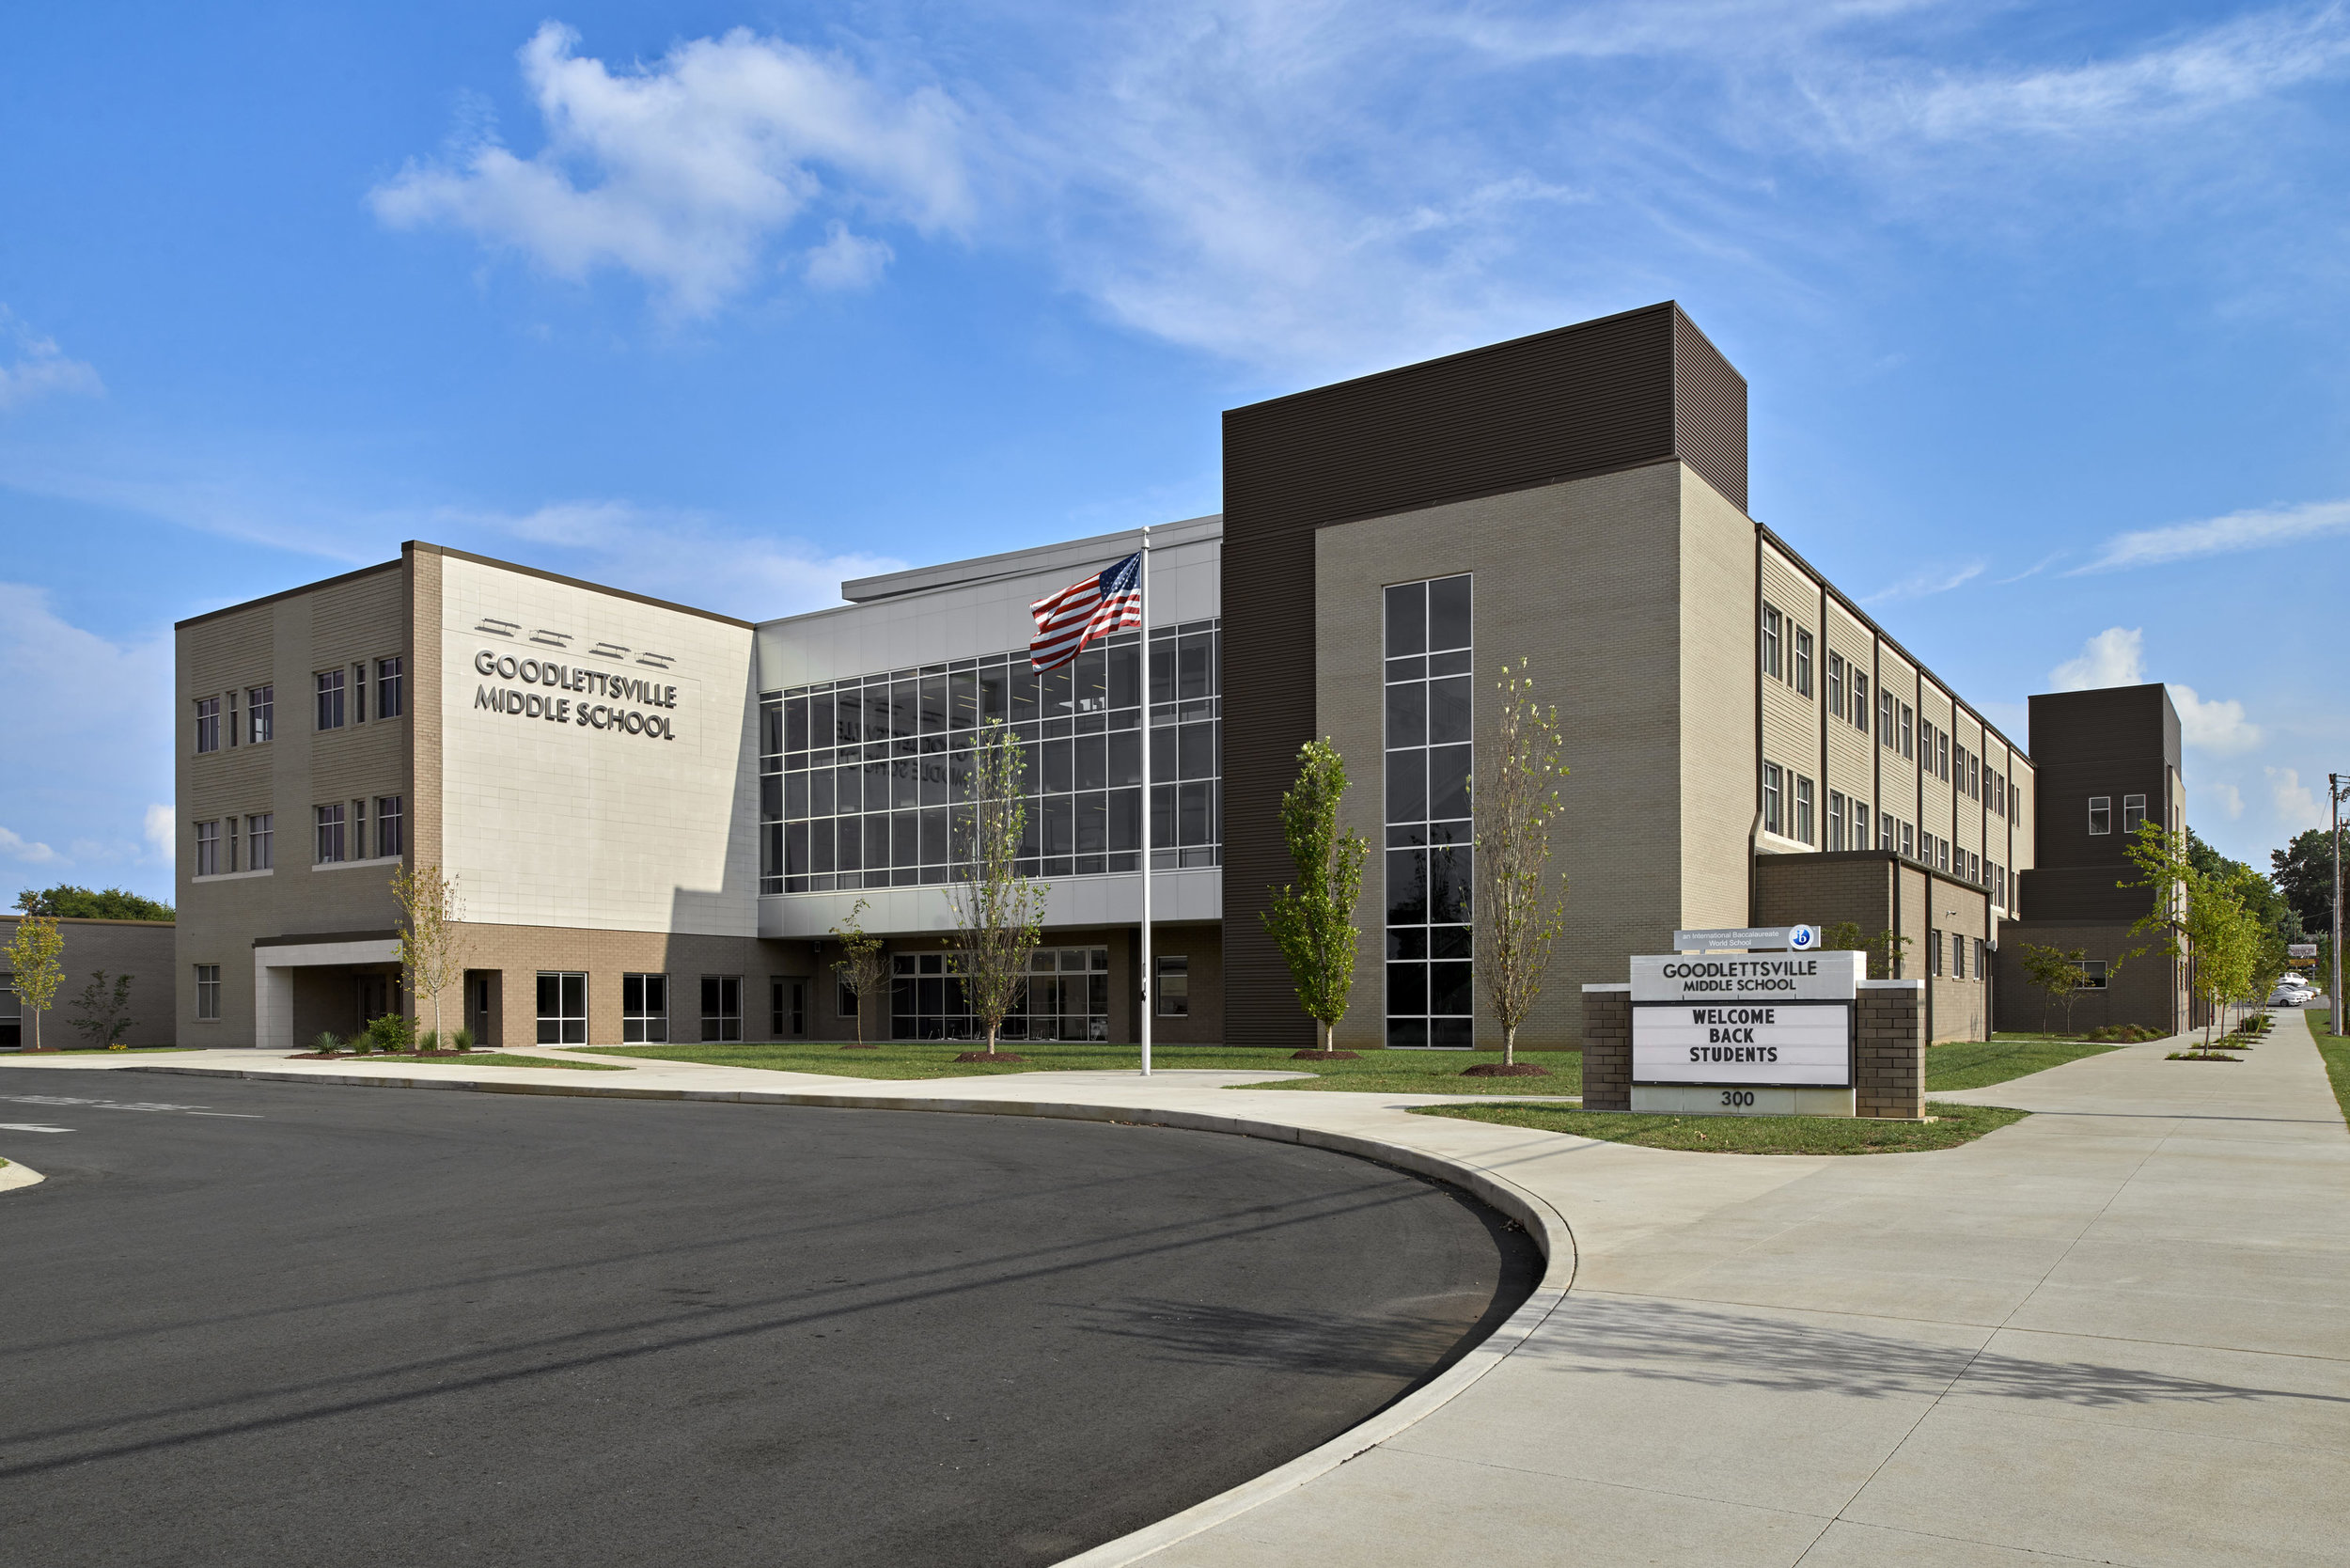 Goodlettsville-Middle-School-Shot-14-R3-web.jpg